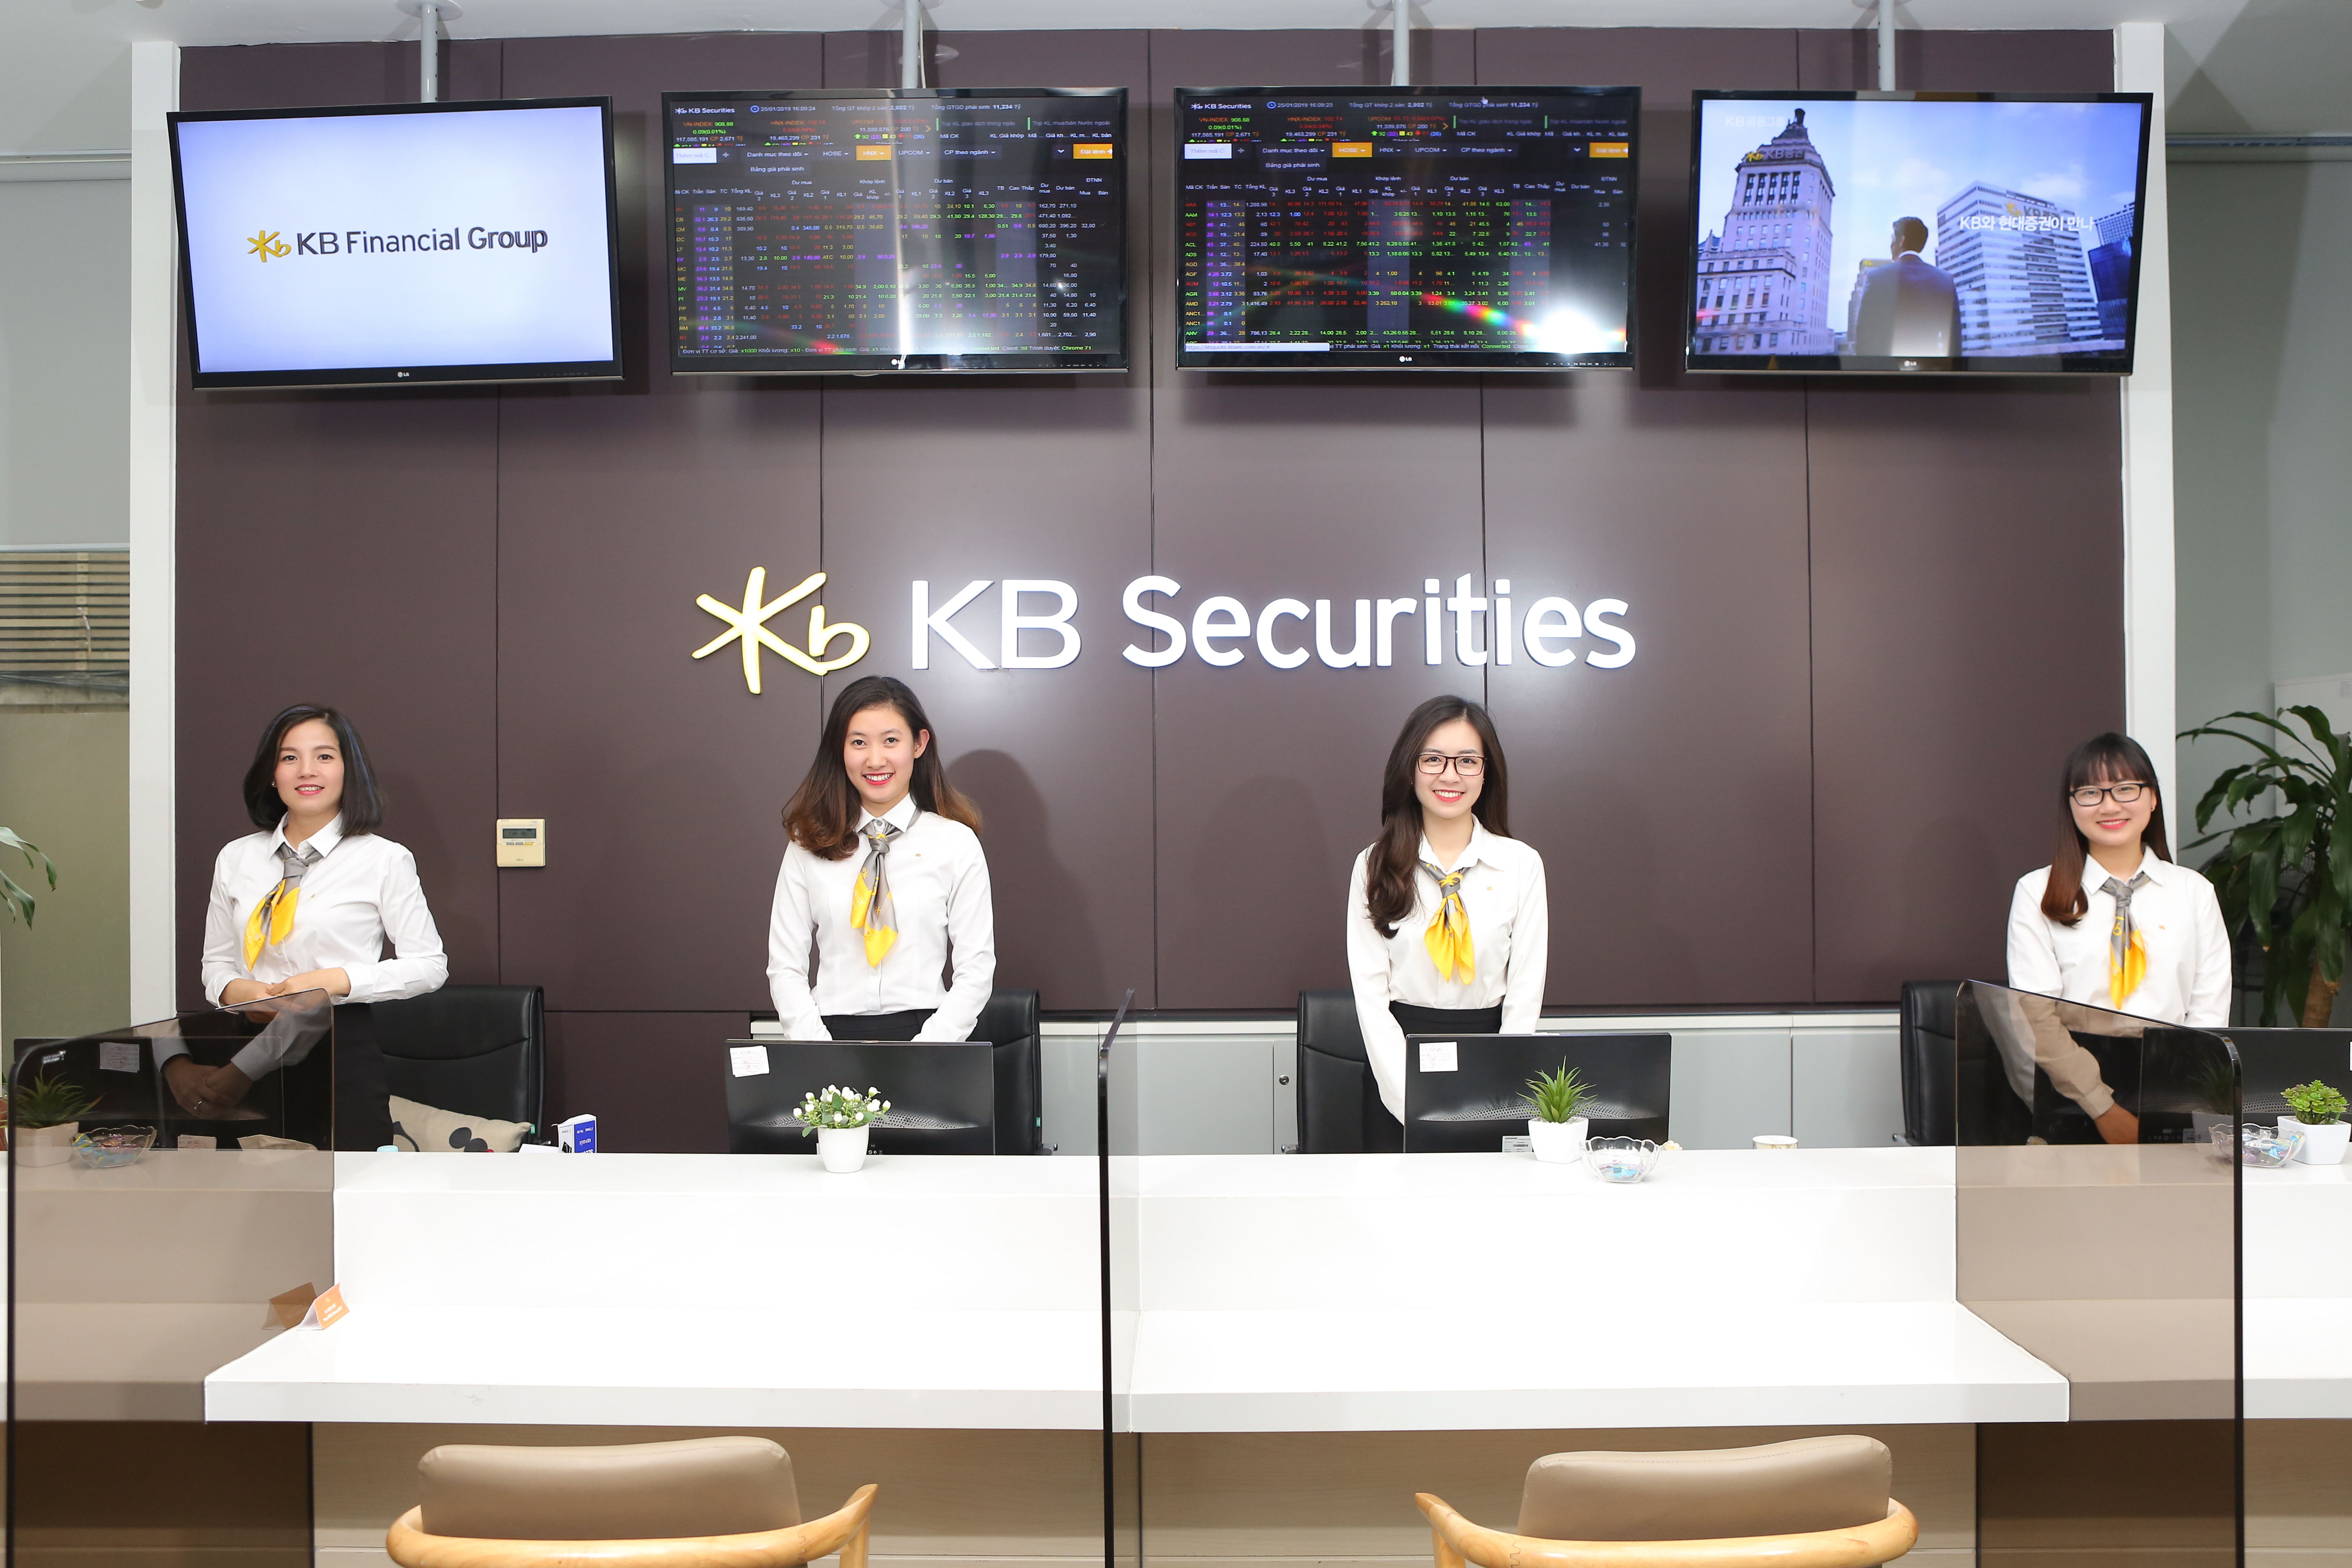 KBSV is strengthened by foreign capital - CafeF